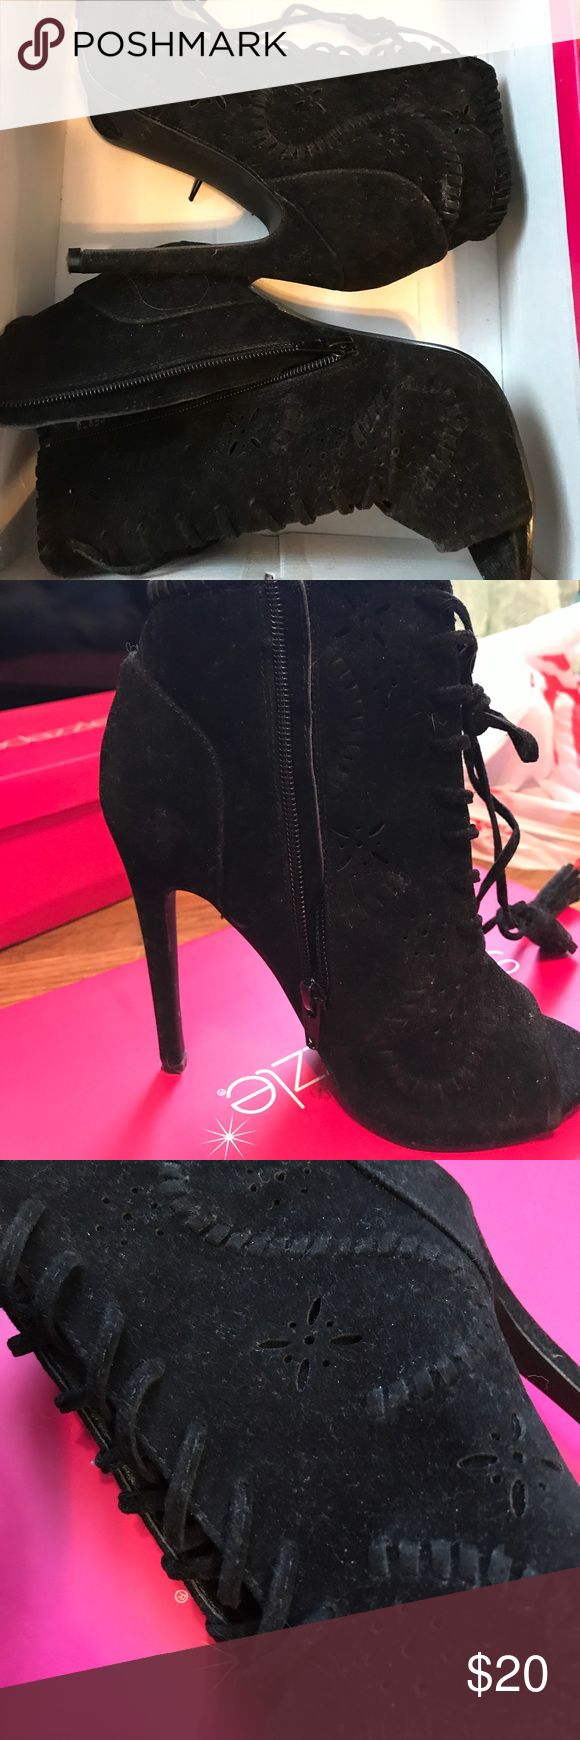 Shoe dazzle black booties Only worn once! Shoe Dazzle Shoes Ankle Boots & Booties